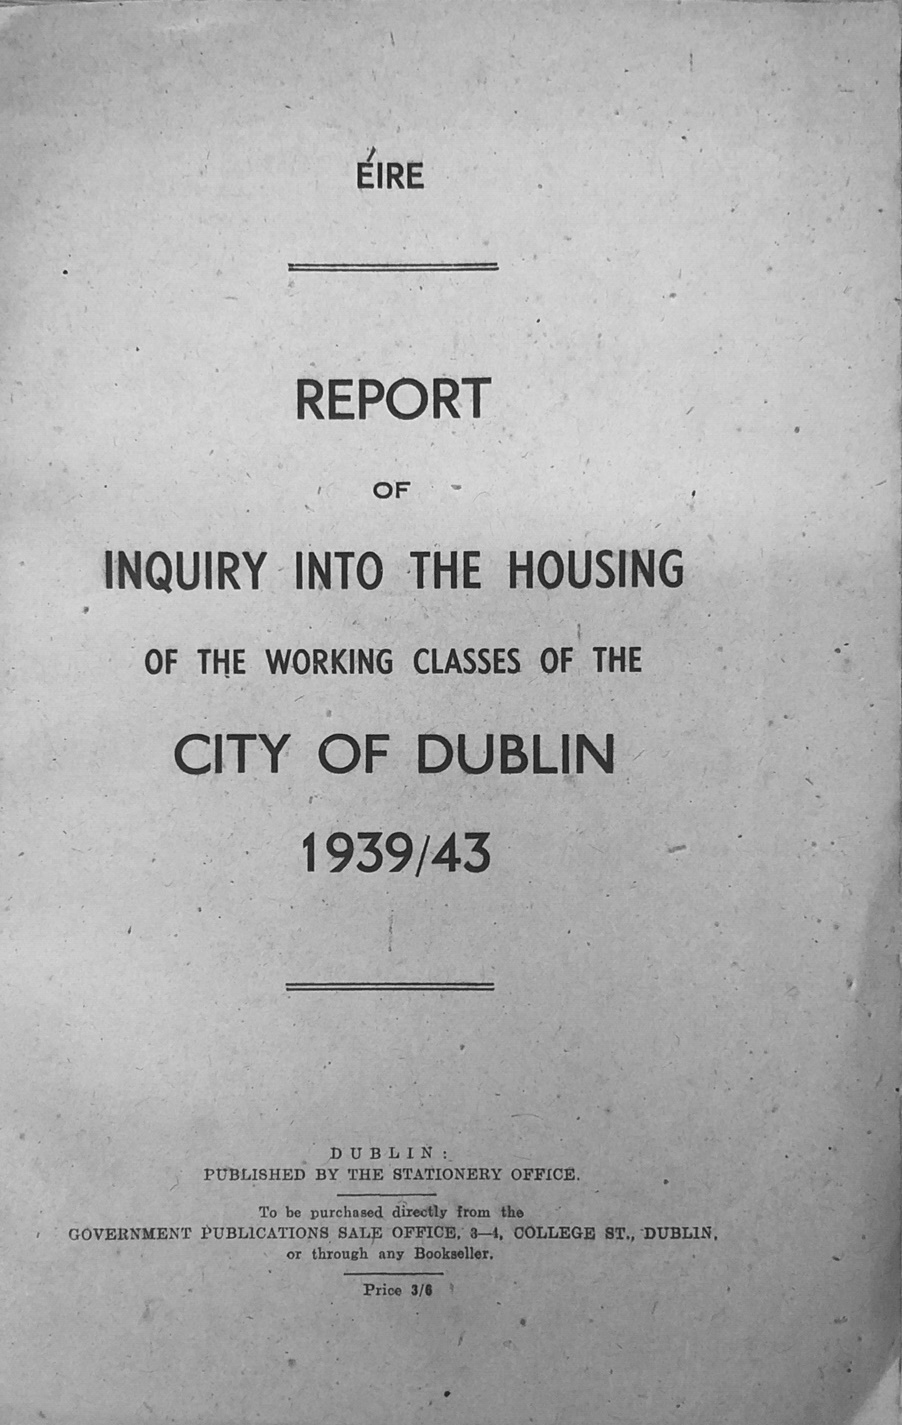 Lot 47 - Stationery Office: Report of Inquiry into the Housing of the Working Classes of the City of Dublin